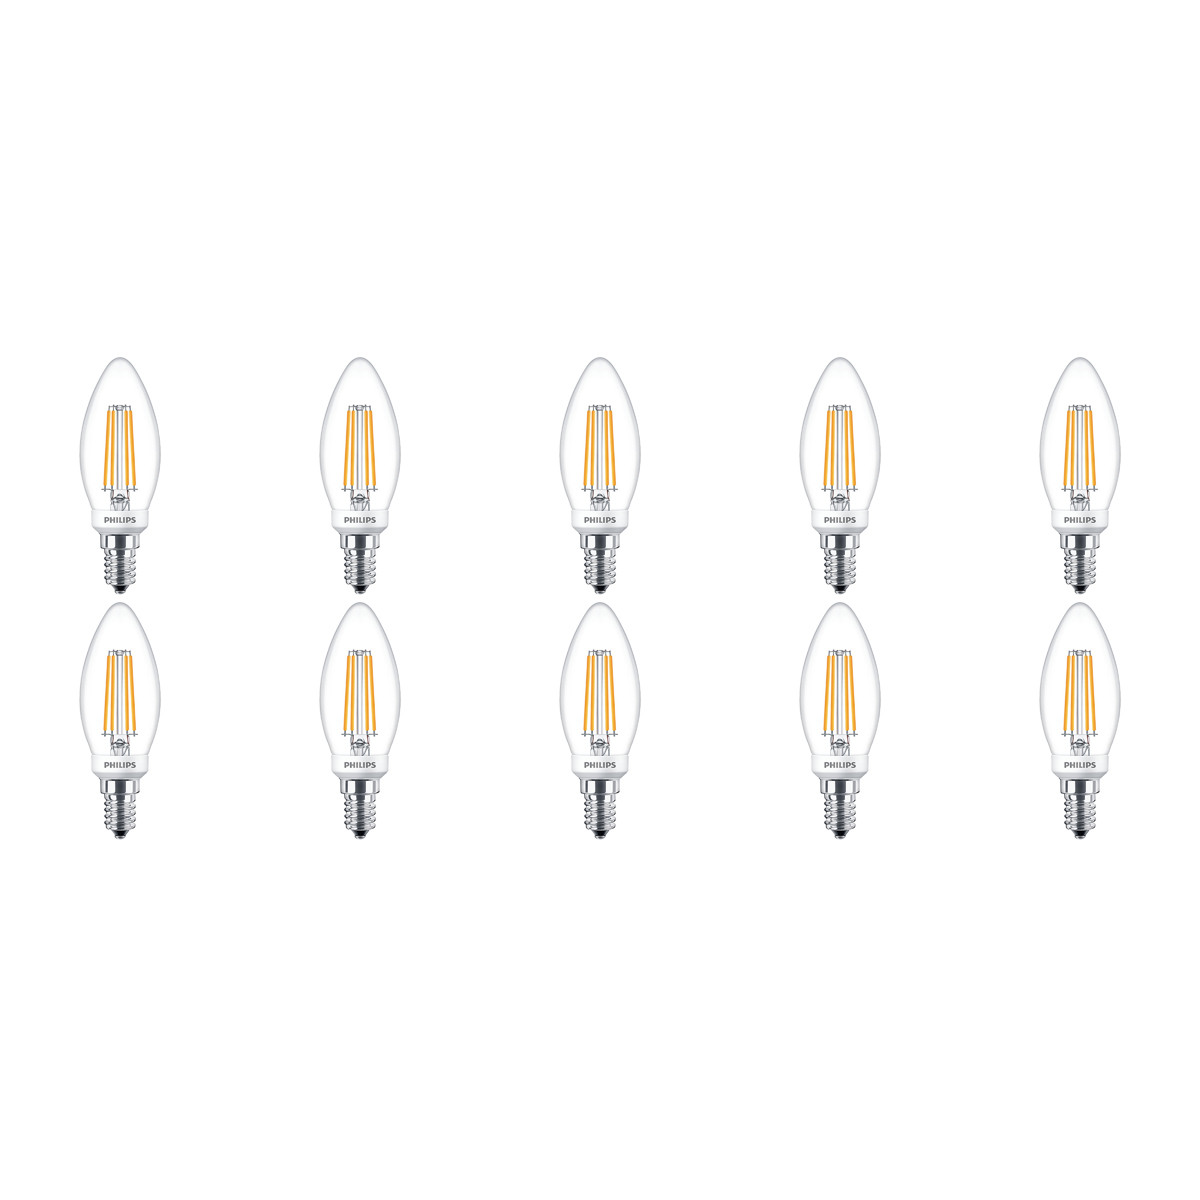 PHILIPS - LED Lamp Filament 10 Pack - Classic LEDCandle 827 B35 CL - E14 Fitting - Dimbaar - 5W - Wa